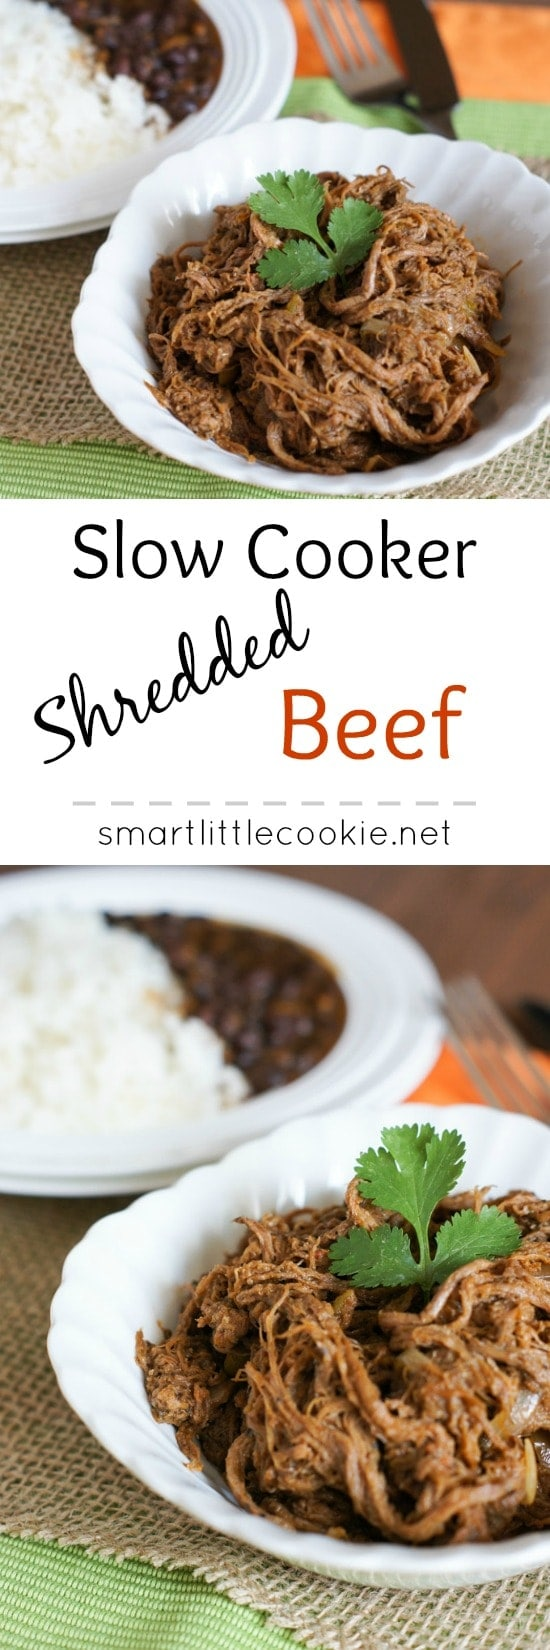 Slow Cooker Shredded Beef ~ Super easy, highly delicious! | smartlittlecookie.net